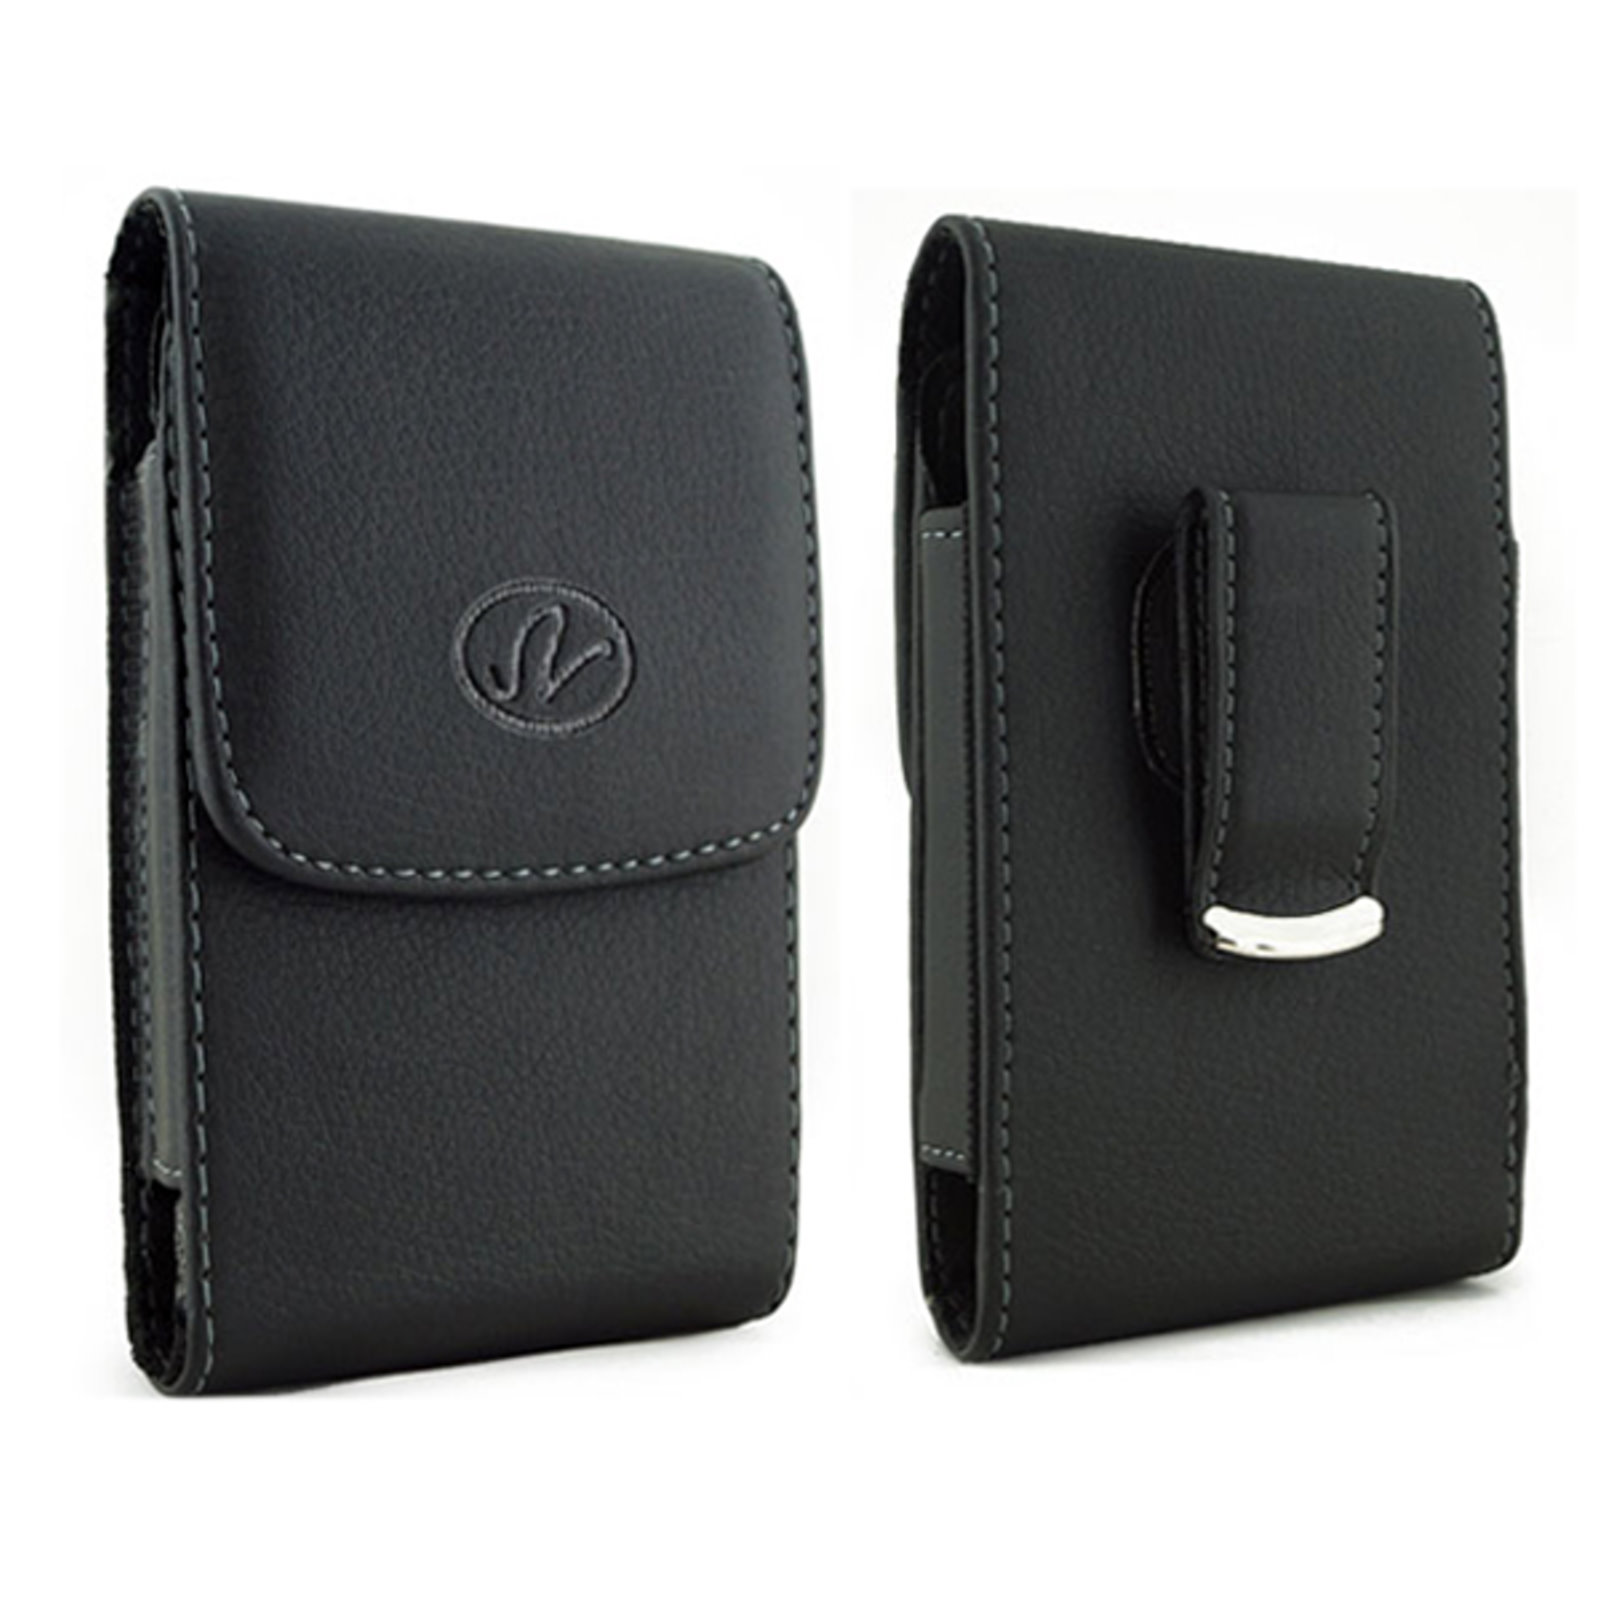 Vertical Leather Case Cover Holster with Swivel Belt Clip FOR T-Mobile LG Optimus L90 * Fits phone w/ Single Layer Case on it *